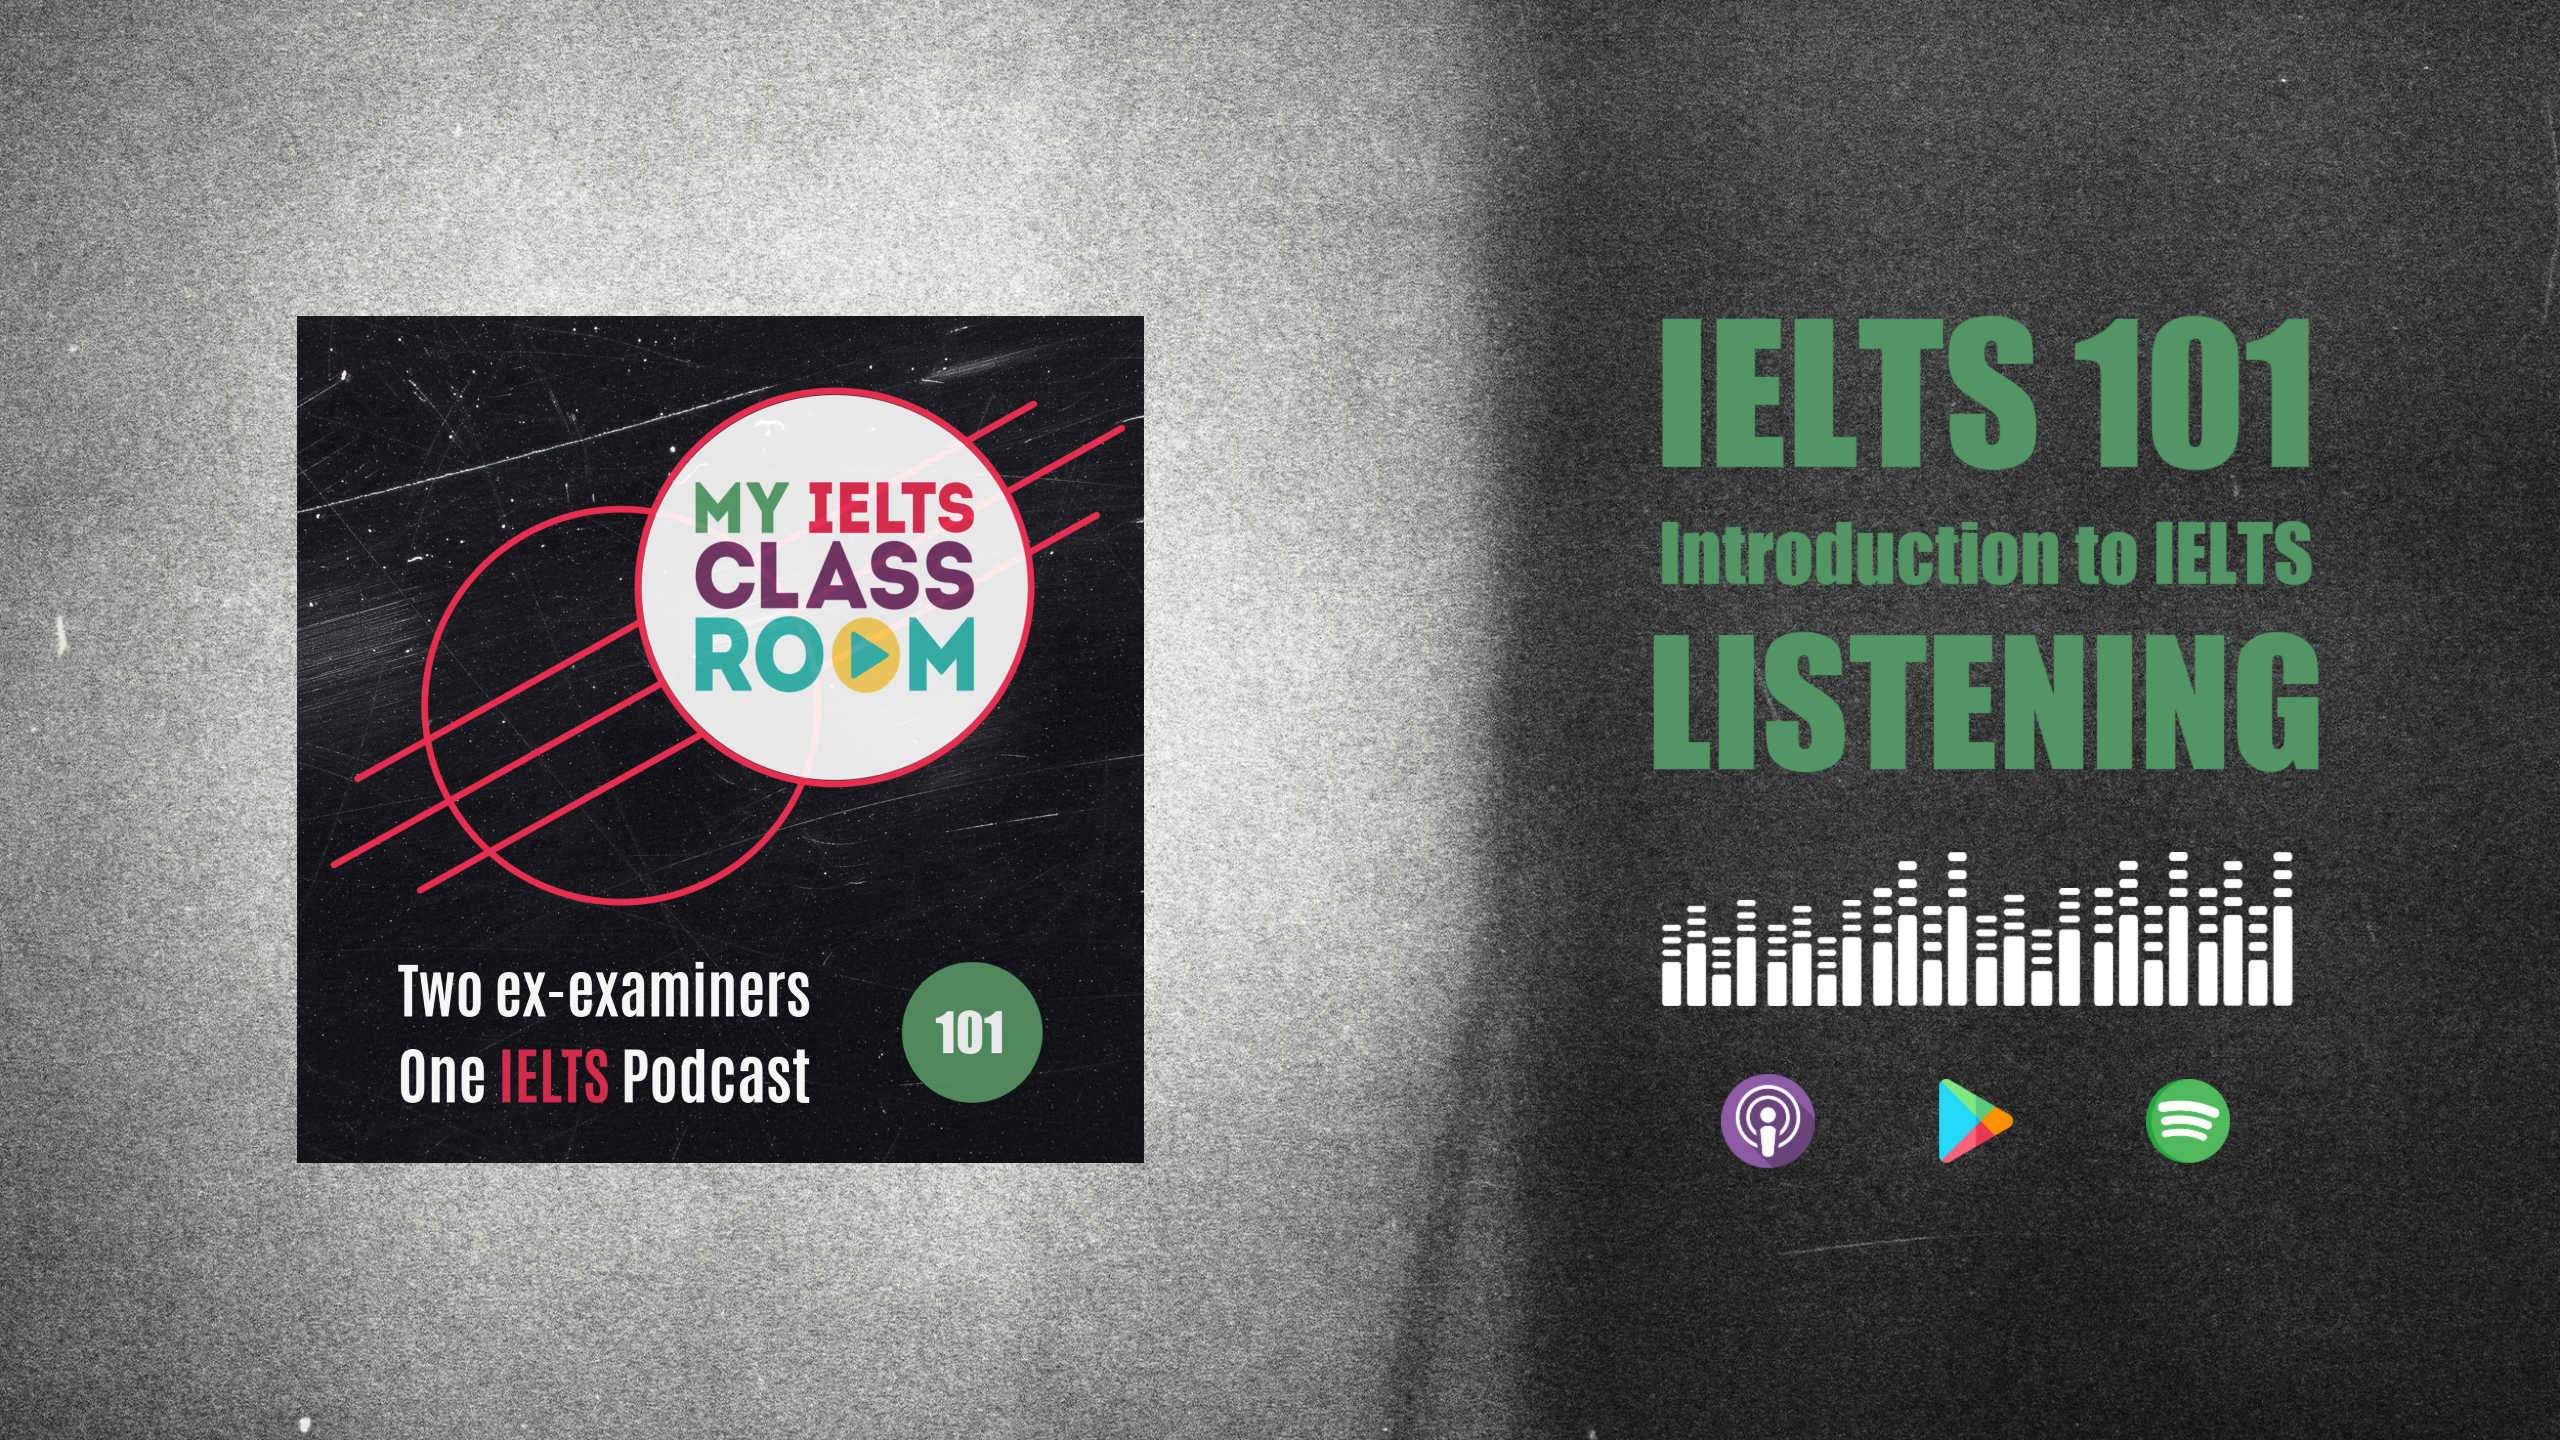 The podcast thumbnail for My IELTS Classroom Podcast sits on the left of the picture, next to the words IELTS 101: An Introduction to IELTS Listening